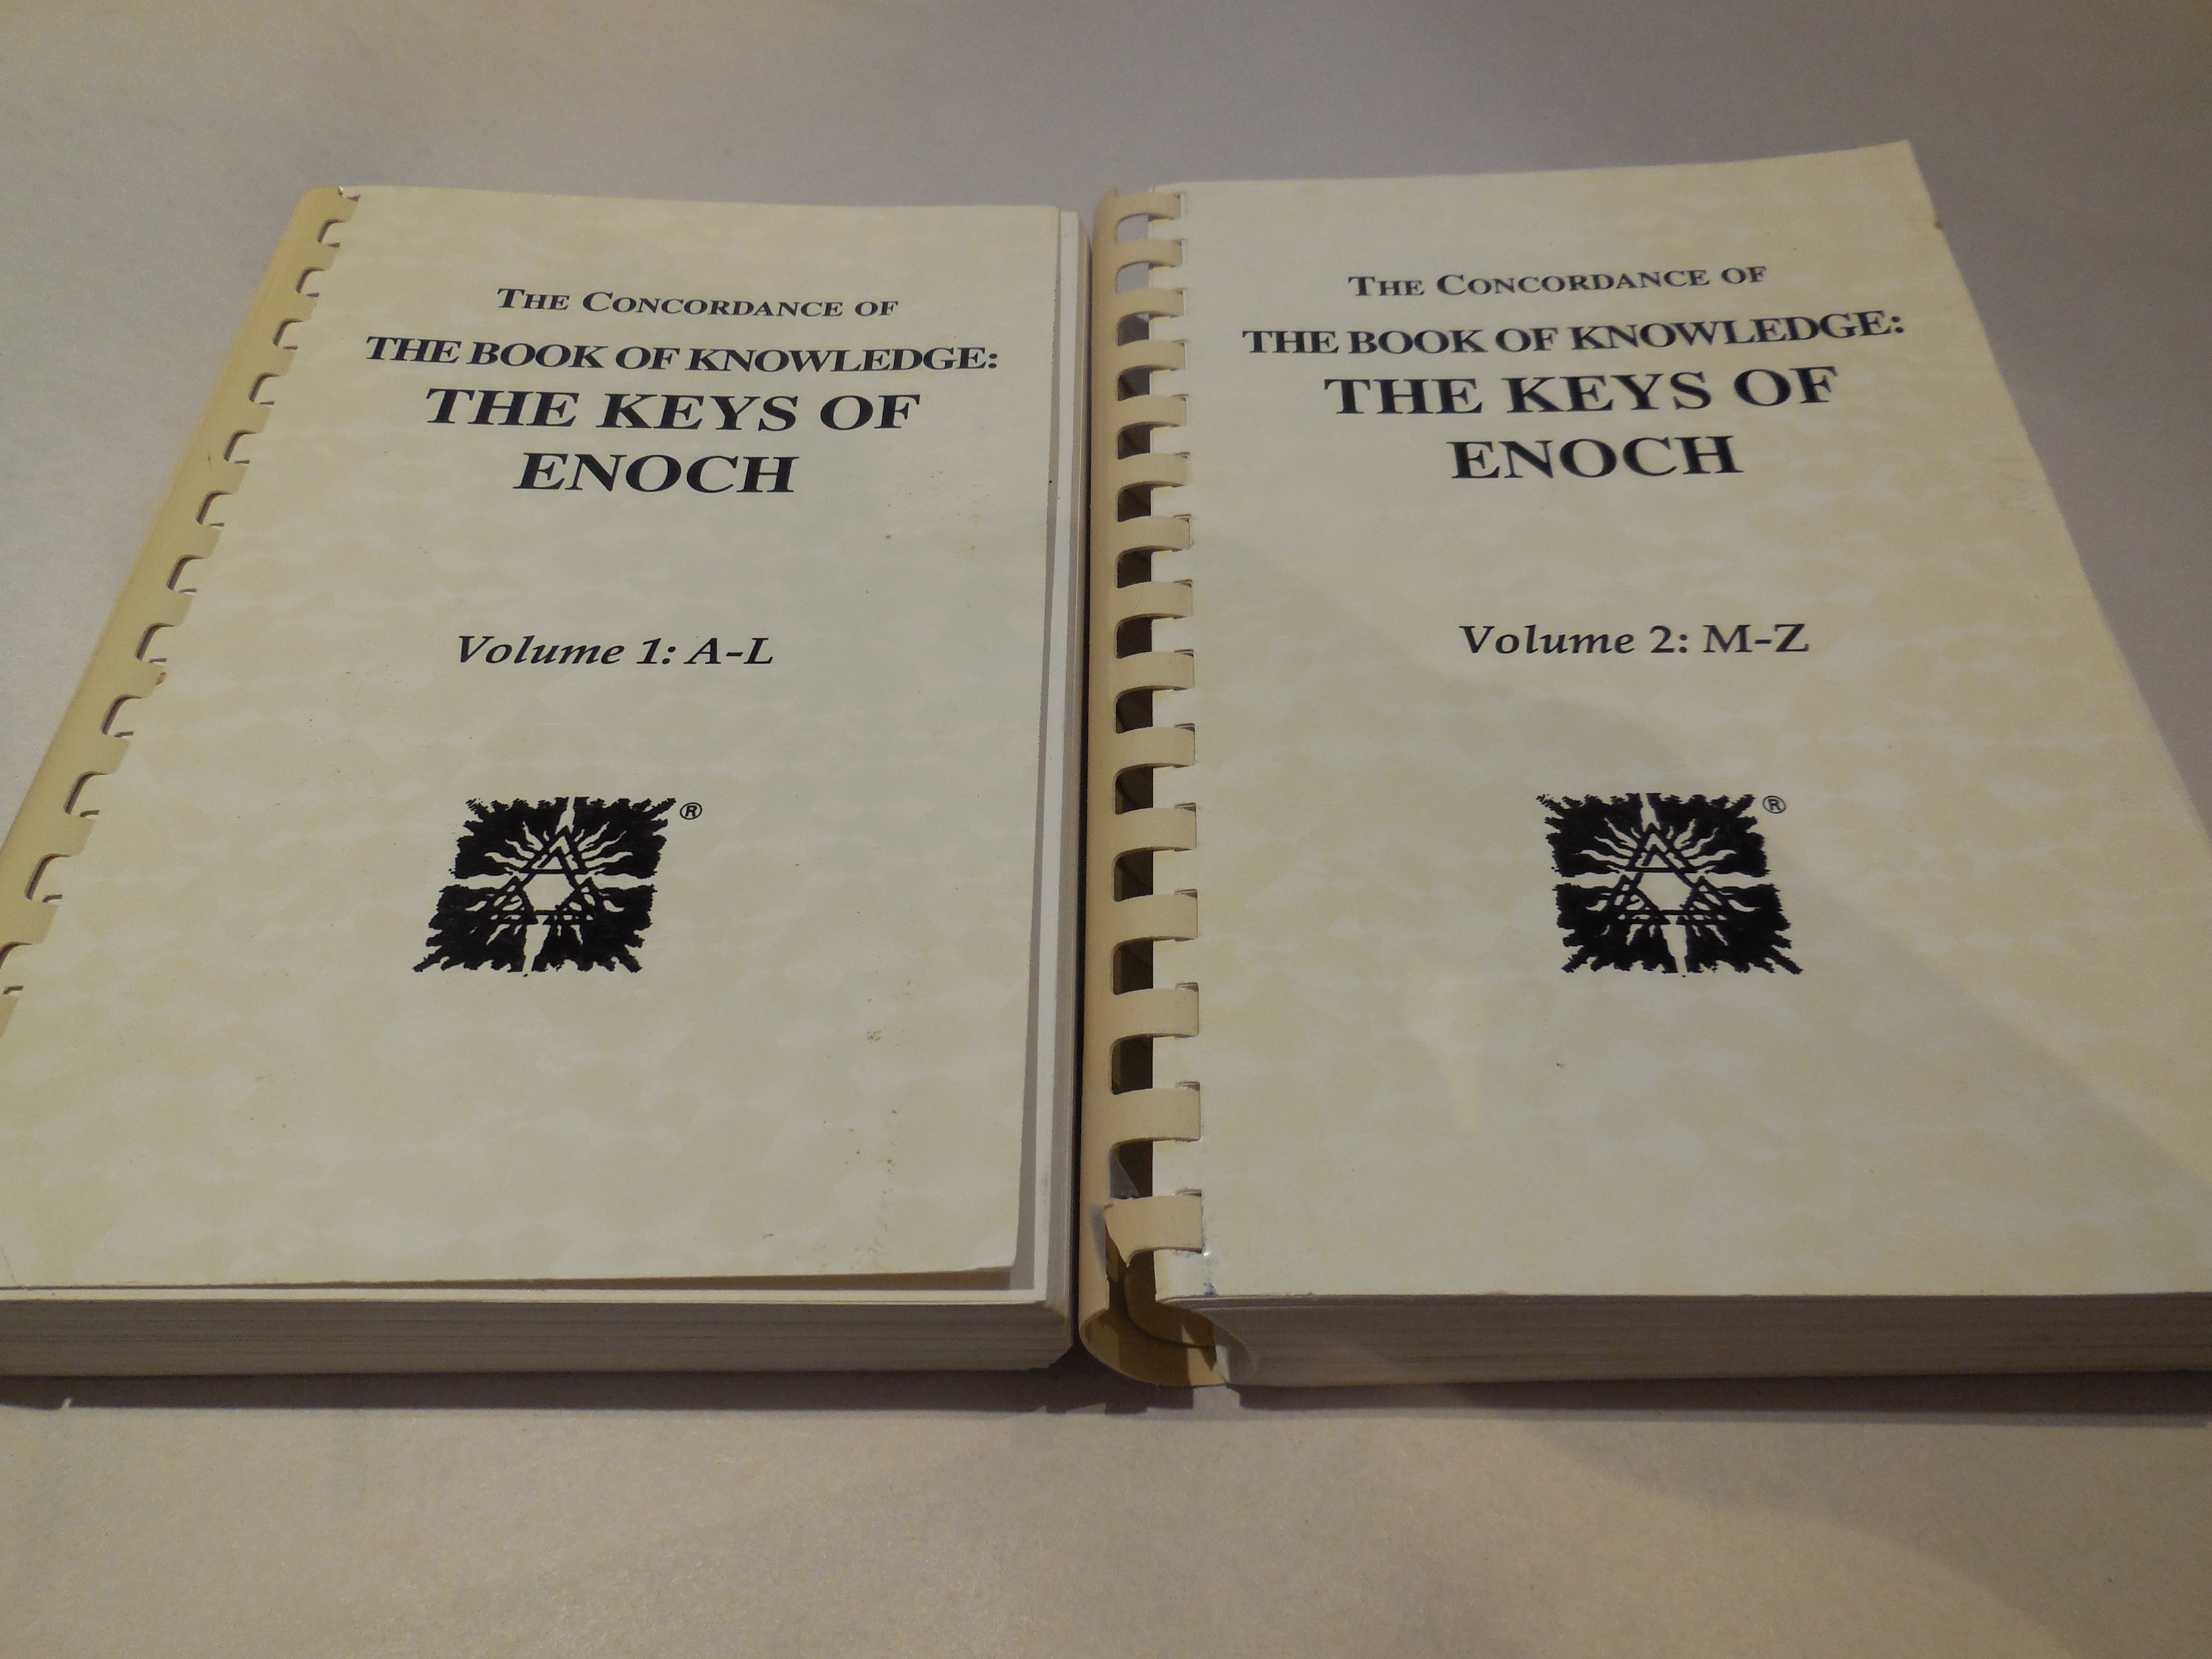 Image for The Concordance of the Book of Knowledge: The Keys of Enoch, Volume 1:A-L, Volume 2:M-Z (2 Volume Set)